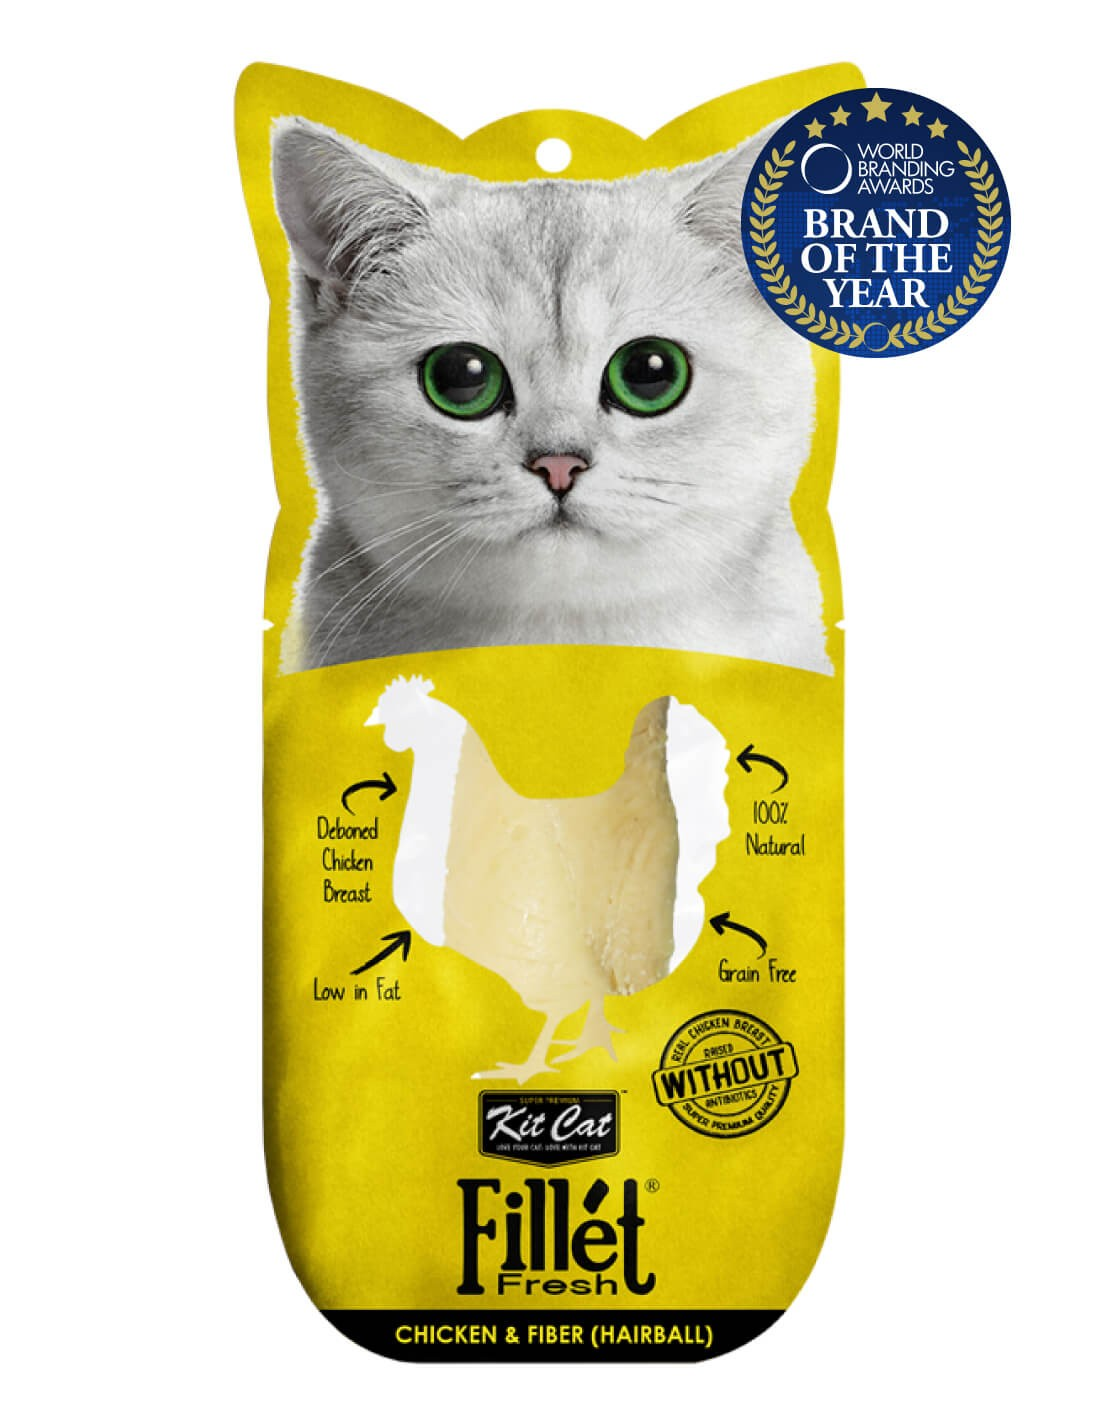 KIT CAT Filete Pollo y Fibra (Hairball) 30g